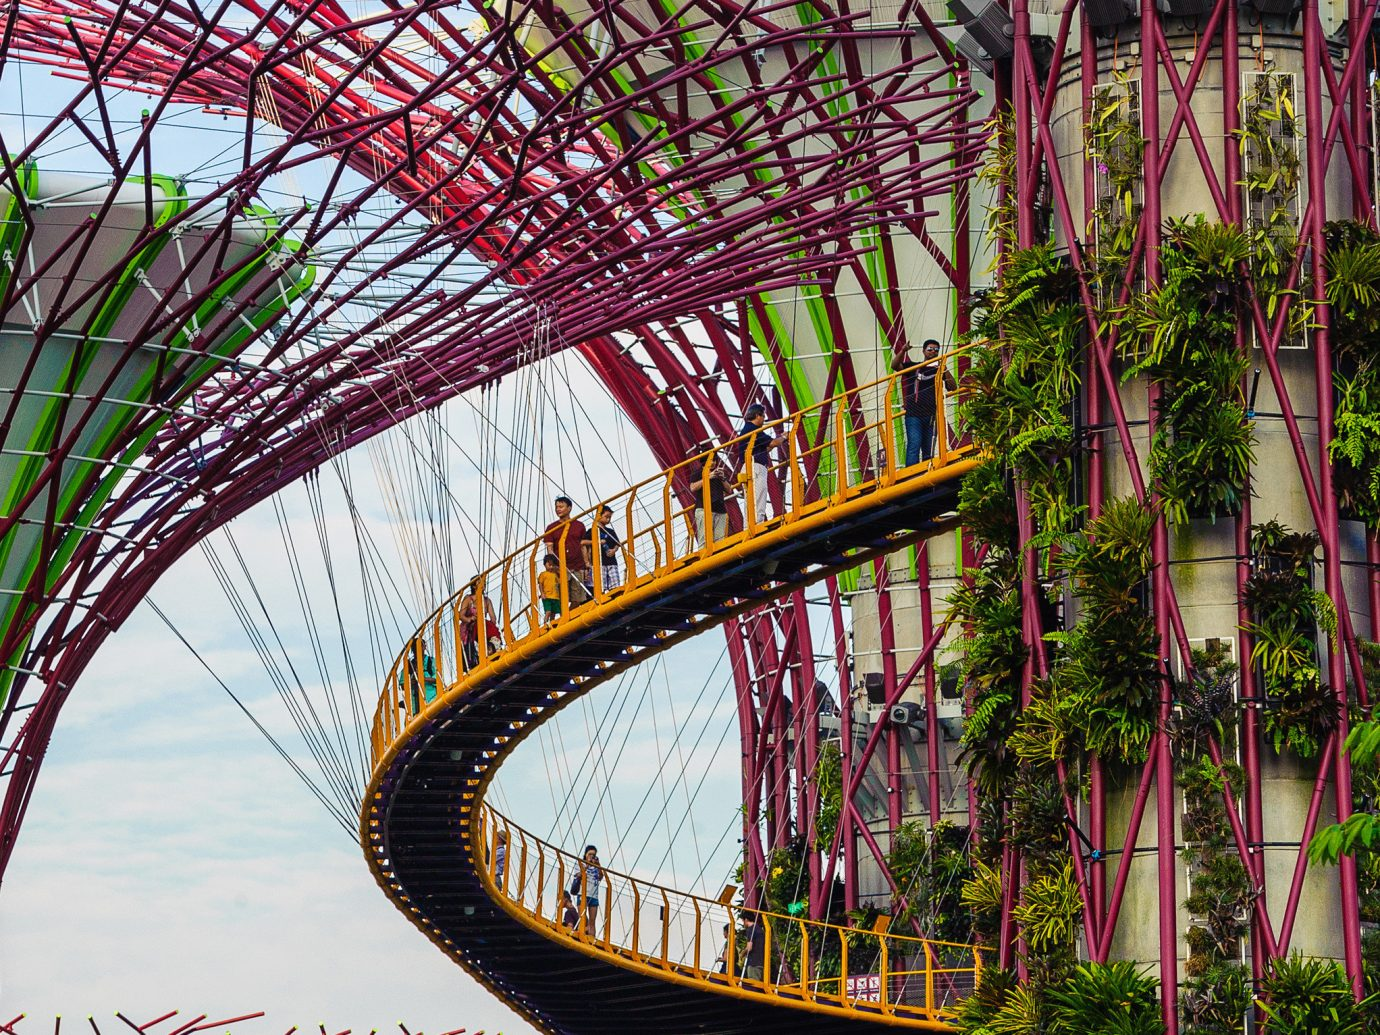 Offbeat Singapore Trip Ideas outdoor sky bridge flower flora tree plant botany Garden floristry arecales leaf branch arch park botanical garden Jungle outdoor object outdoor structure amusement park roller coaster ride